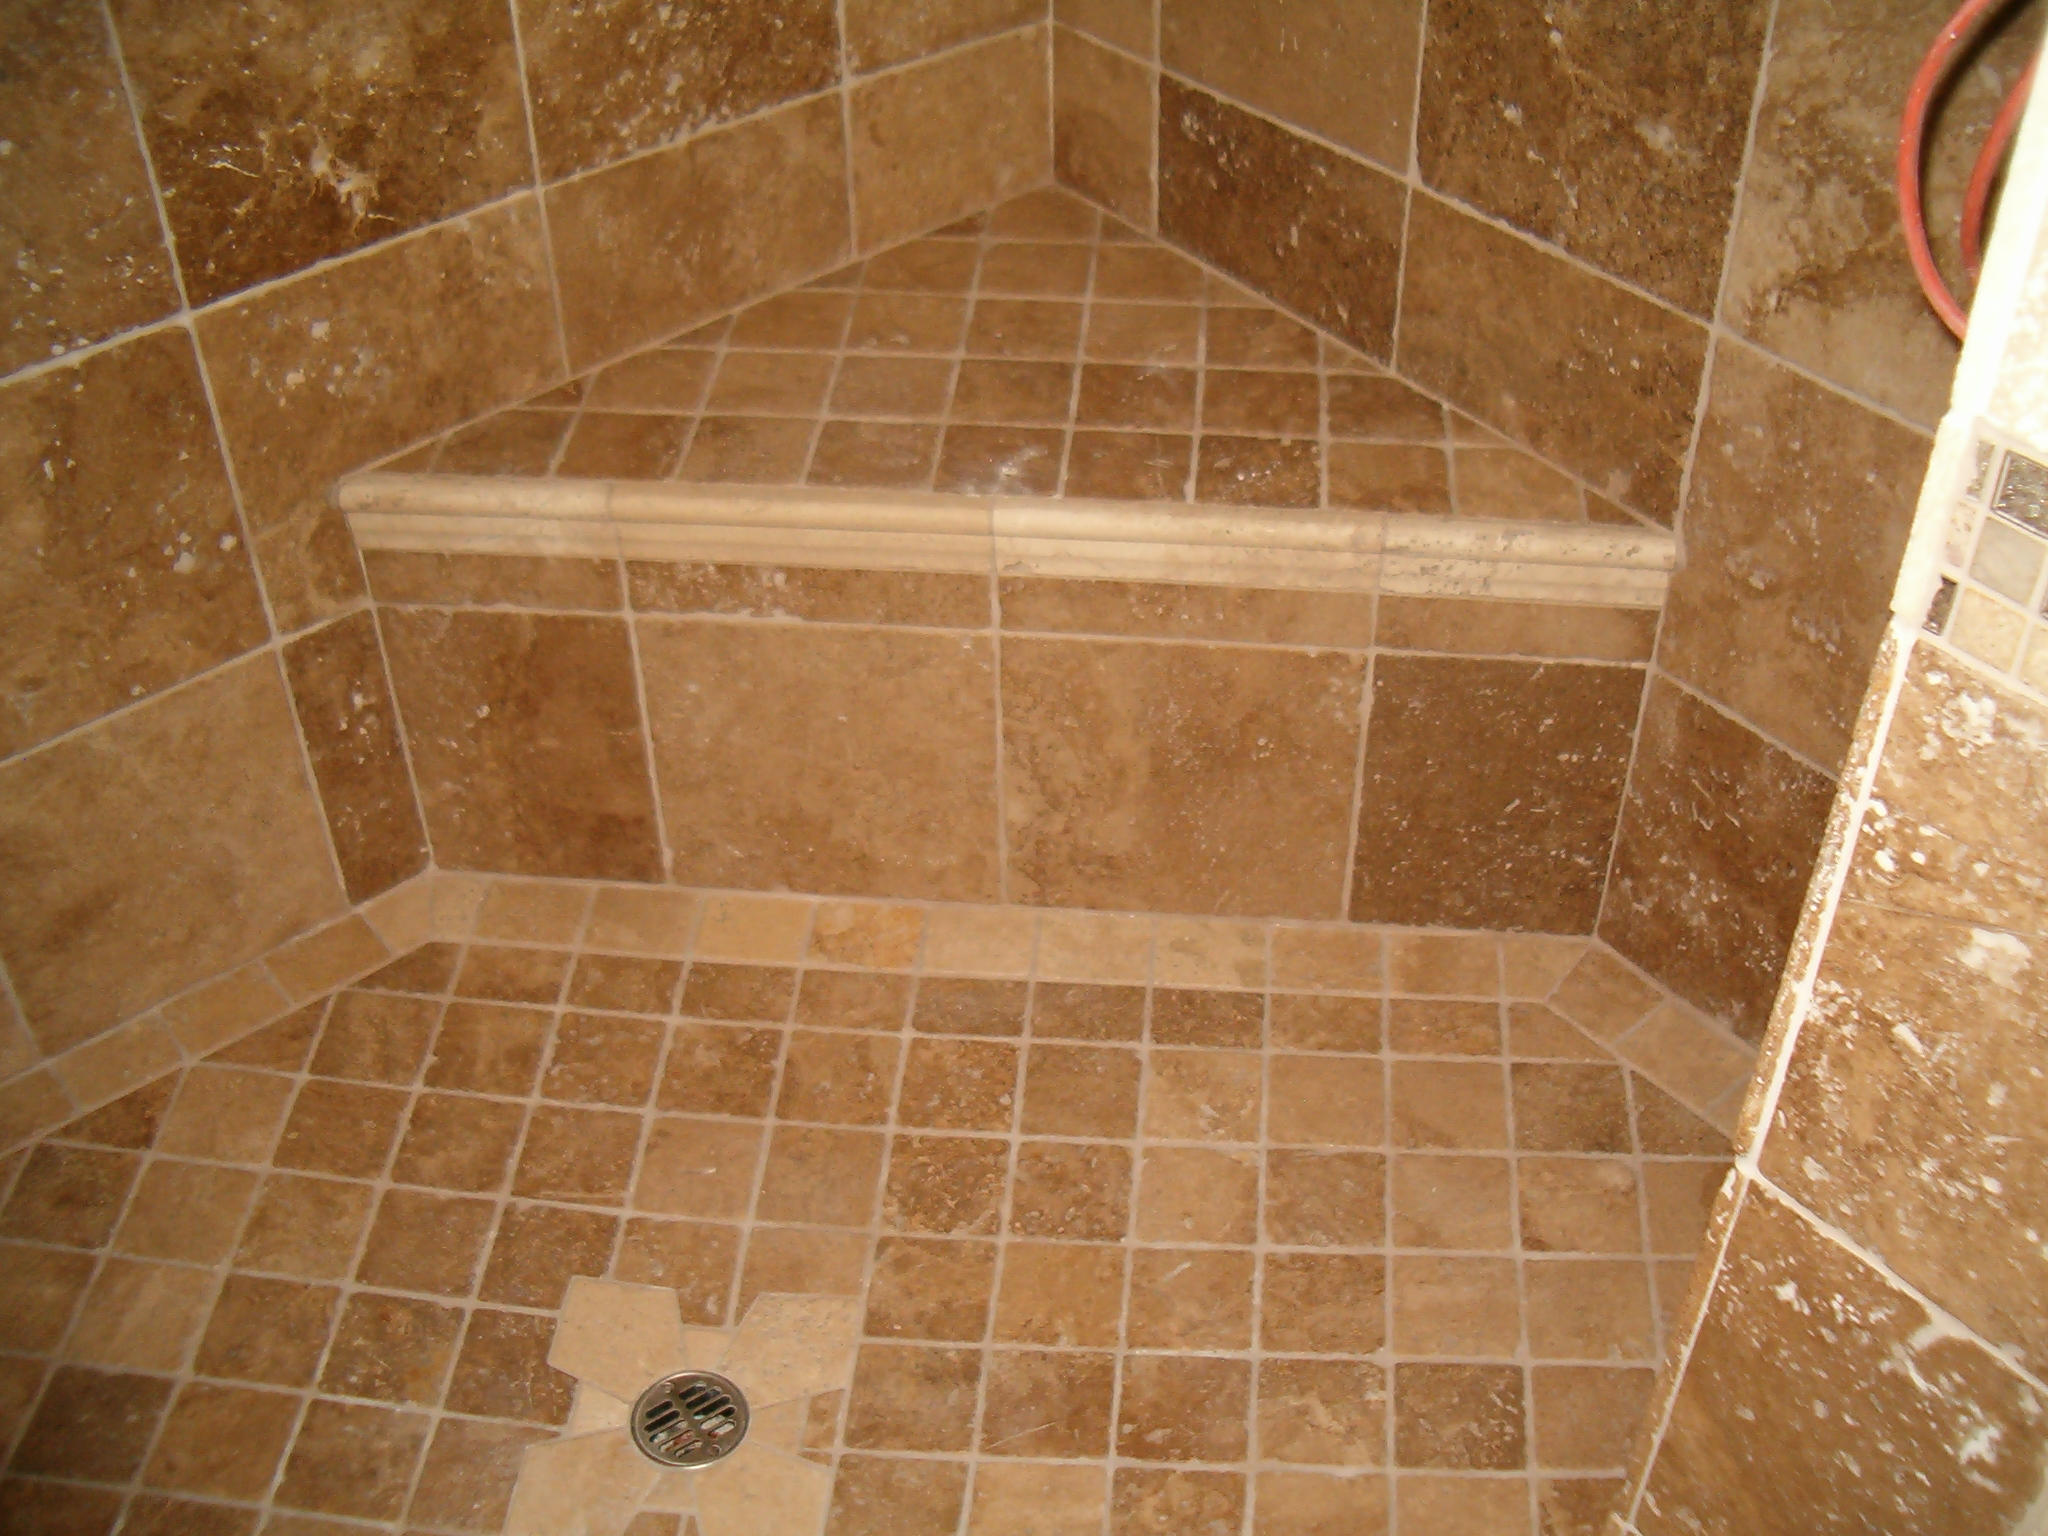 Shower anatomy Tile bathroom